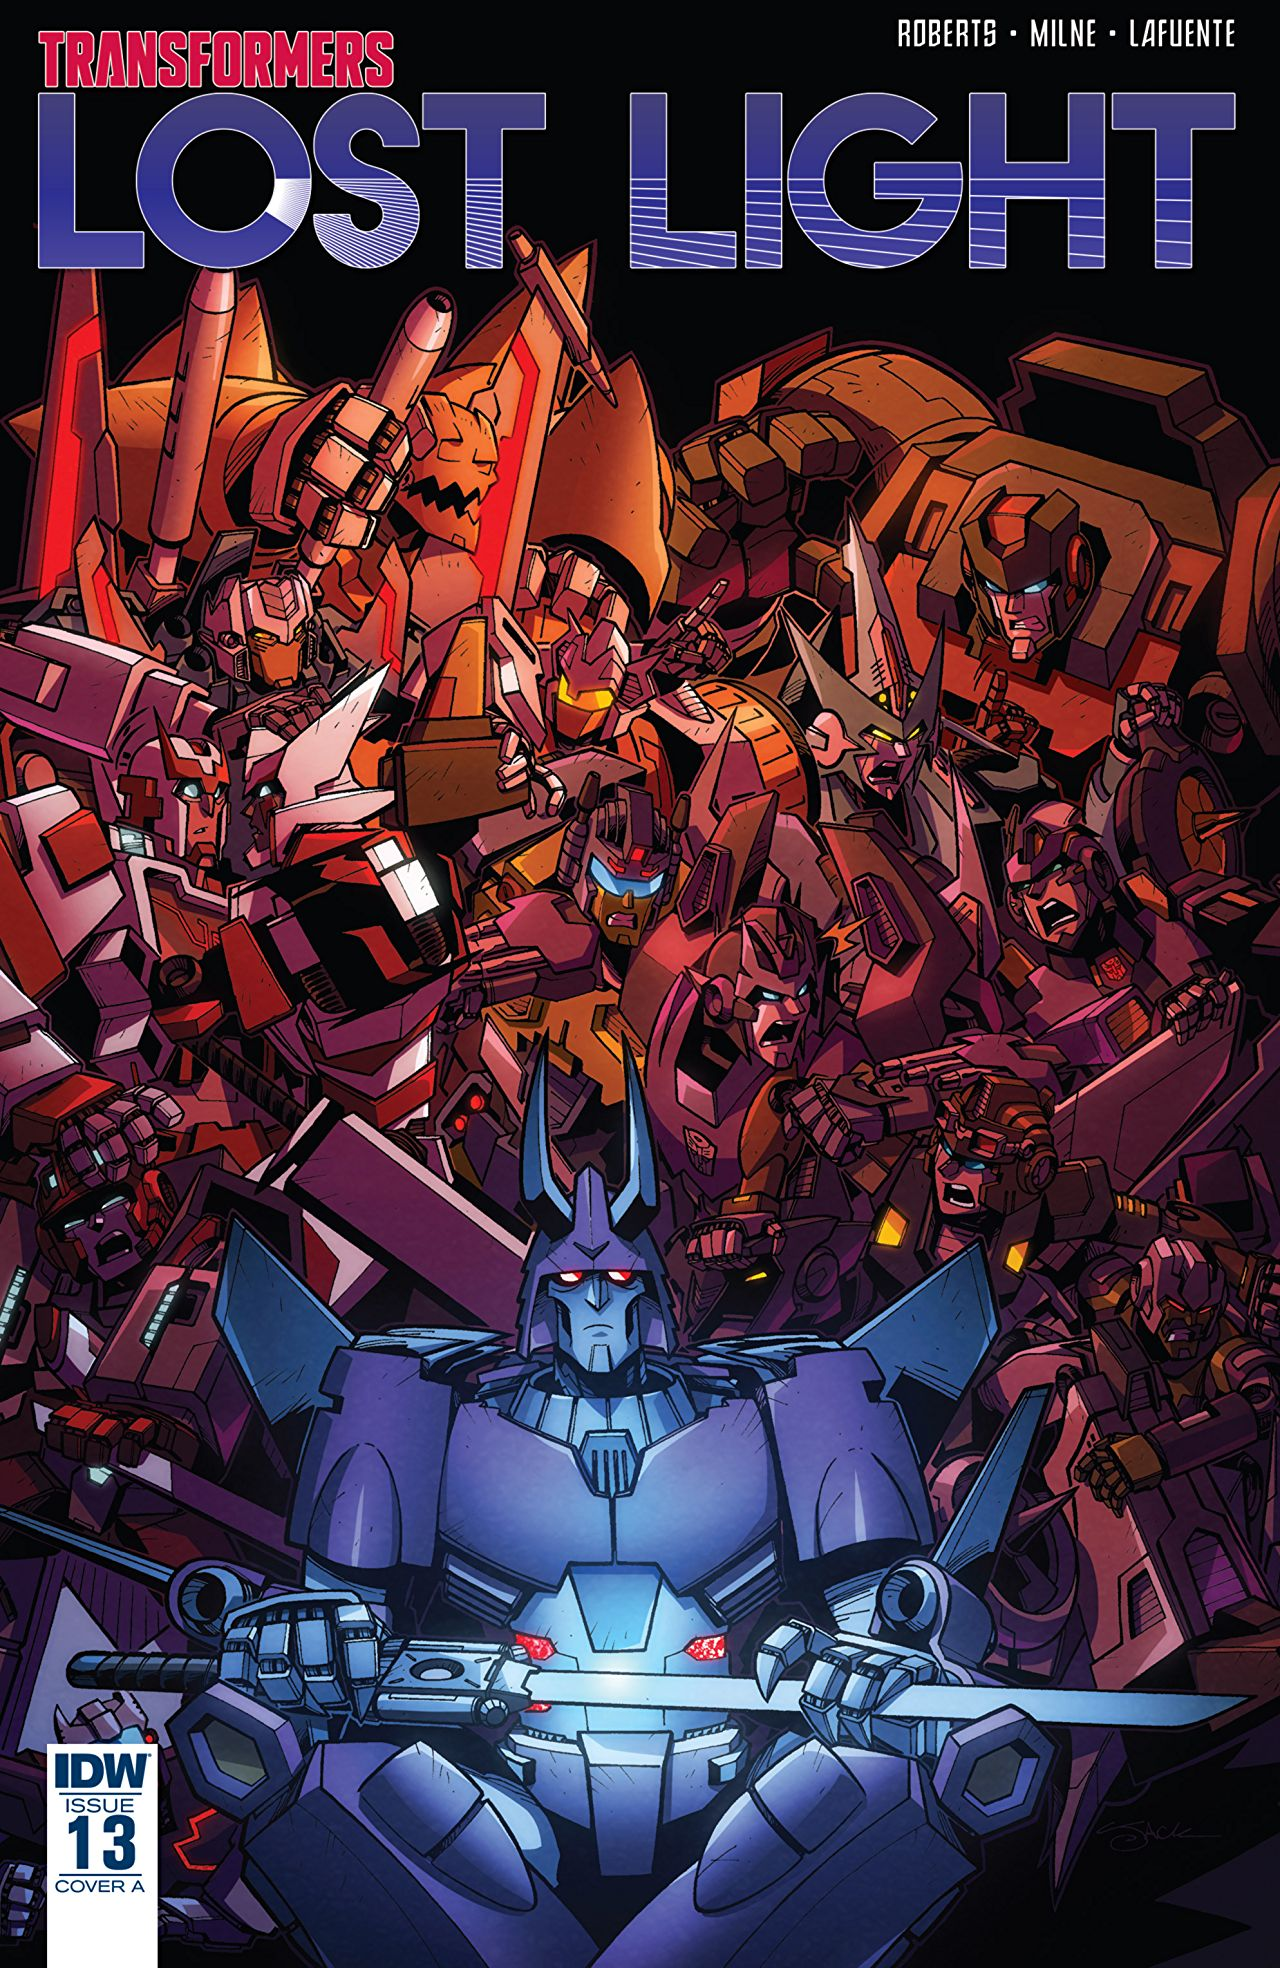 Transformers: Lost Light #13 Review